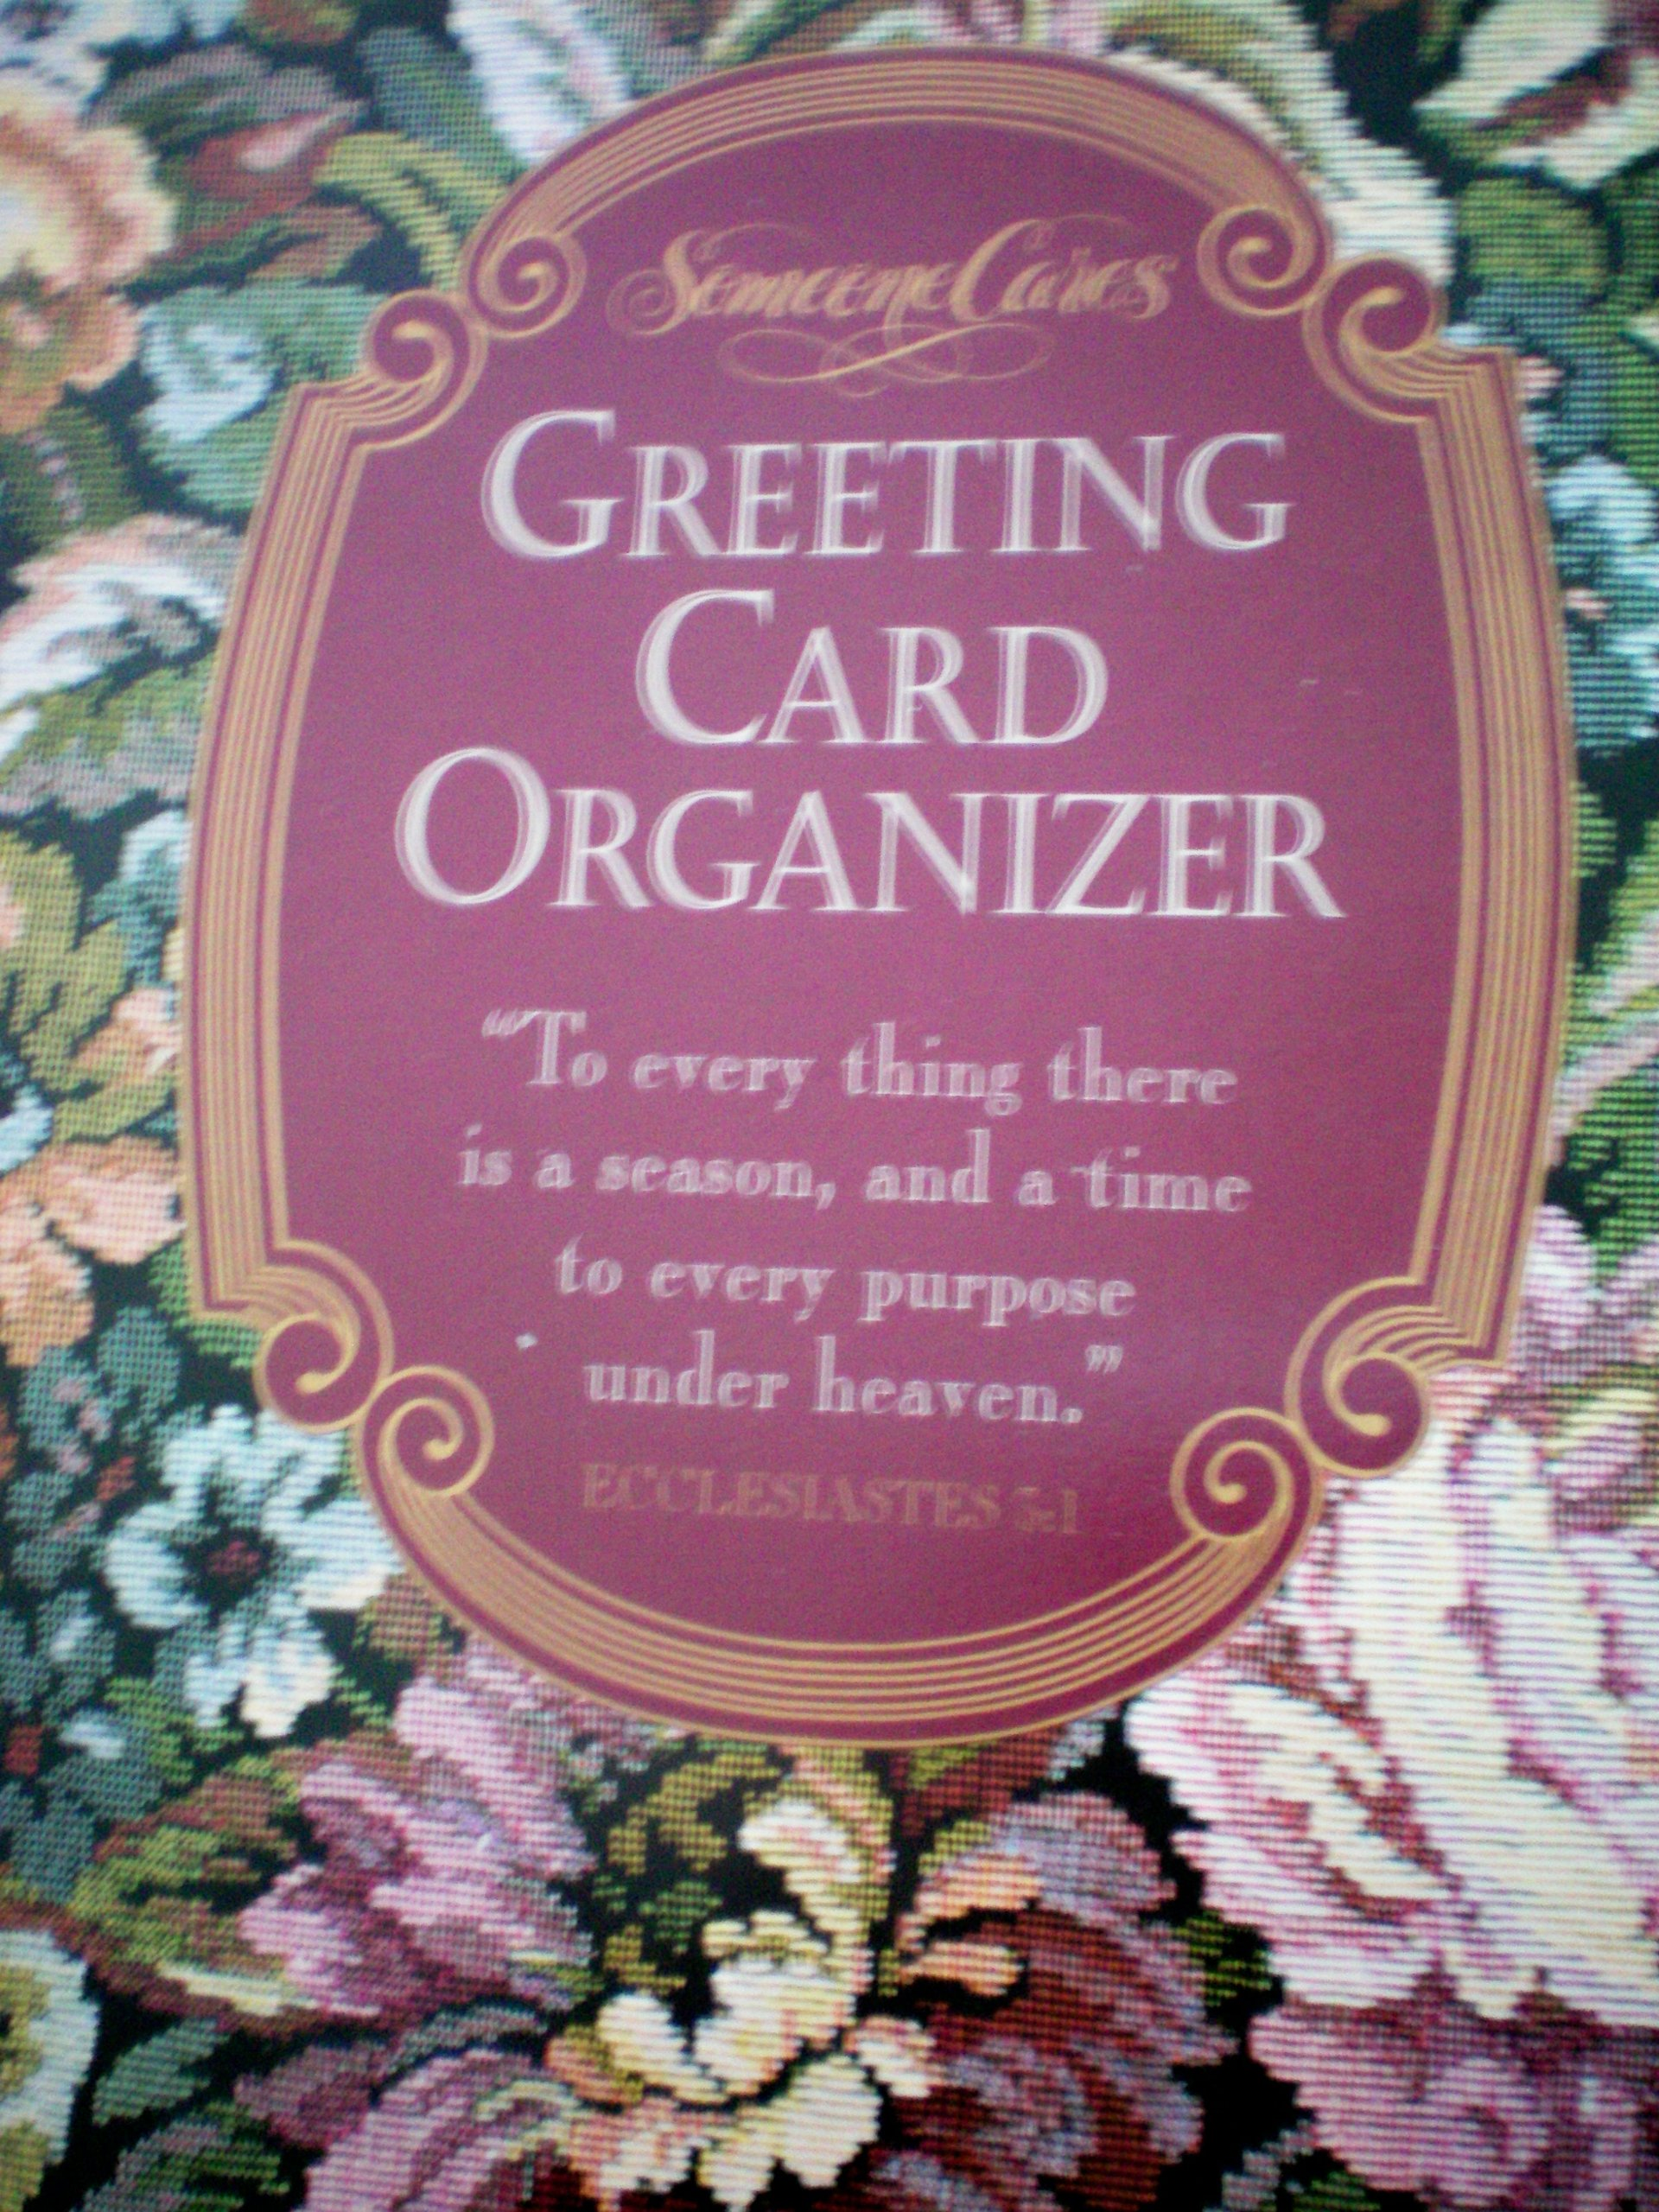 Greeting card organizer guideposts amazon books m4hsunfo